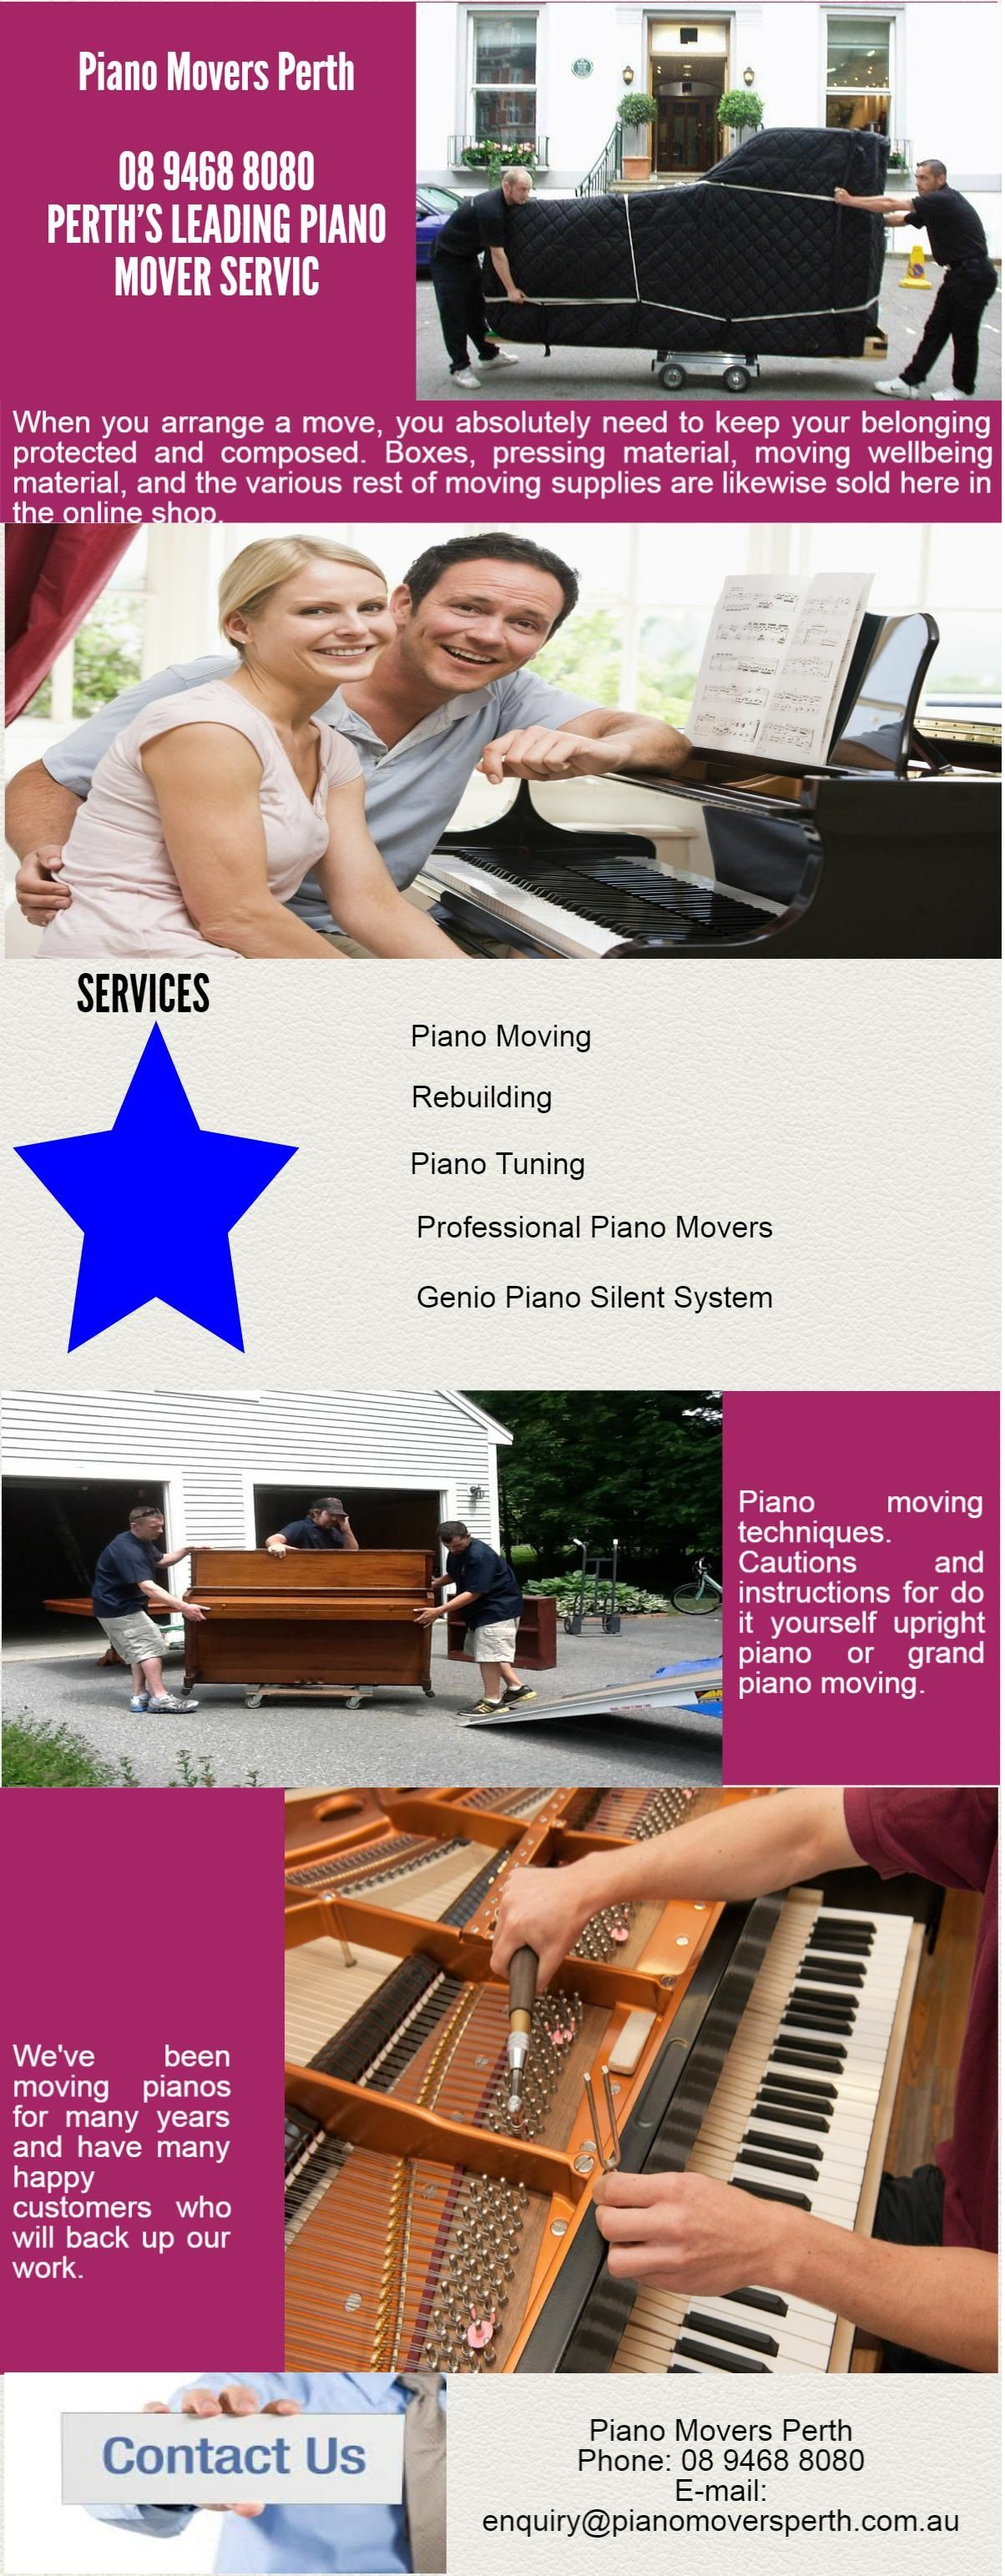 Checkout Best Piano Movers in Perth. With highly skilled